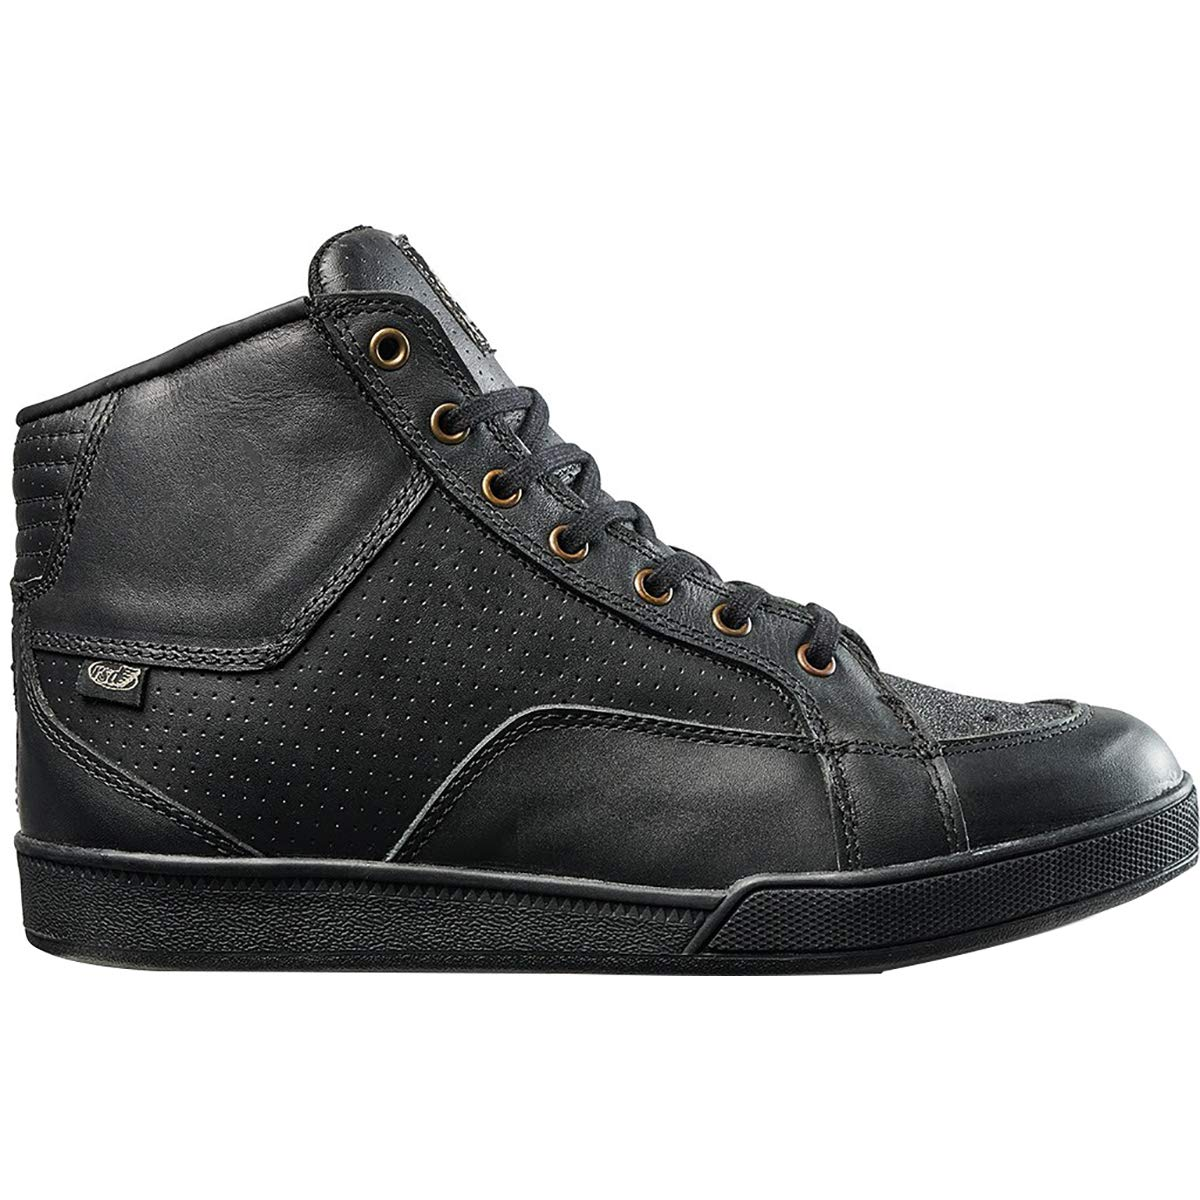 Roland Sands Design Fresno Perforated Mens Street Motorcycle Shoes 10 Black Charcoal